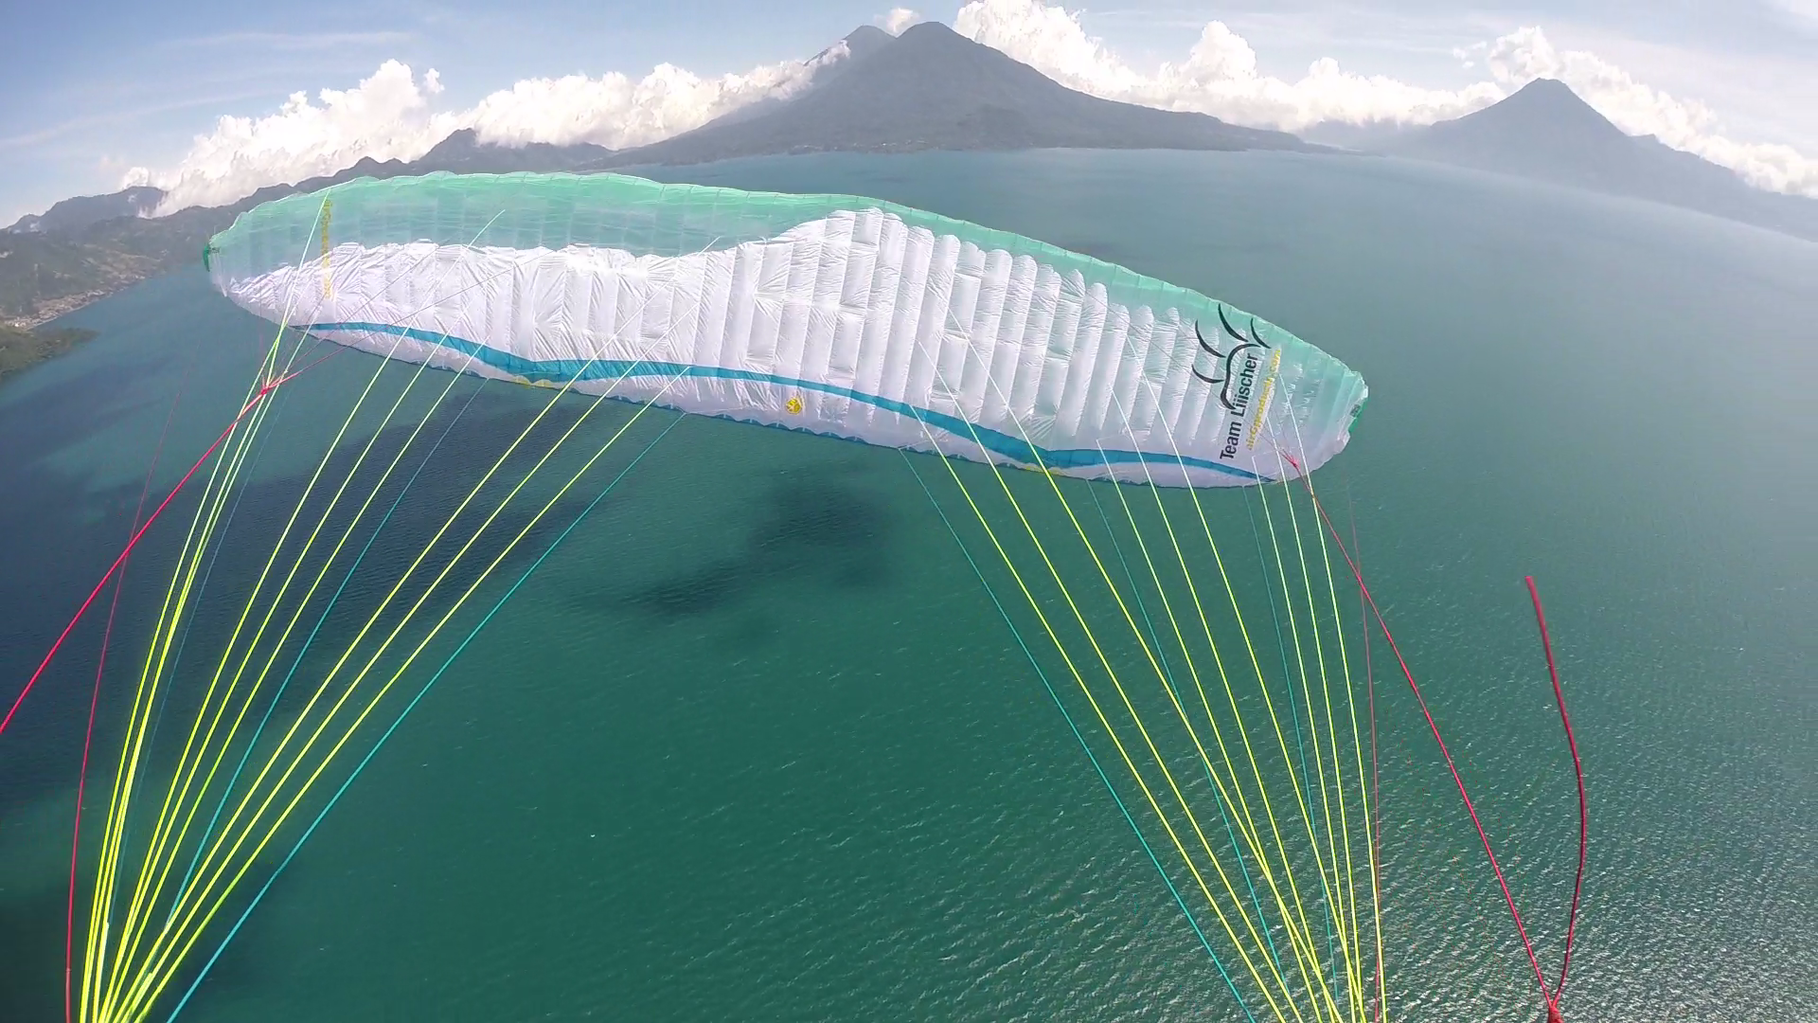 Let´s go paragliding at Lake Atitlan, Guatemala  We do tandem